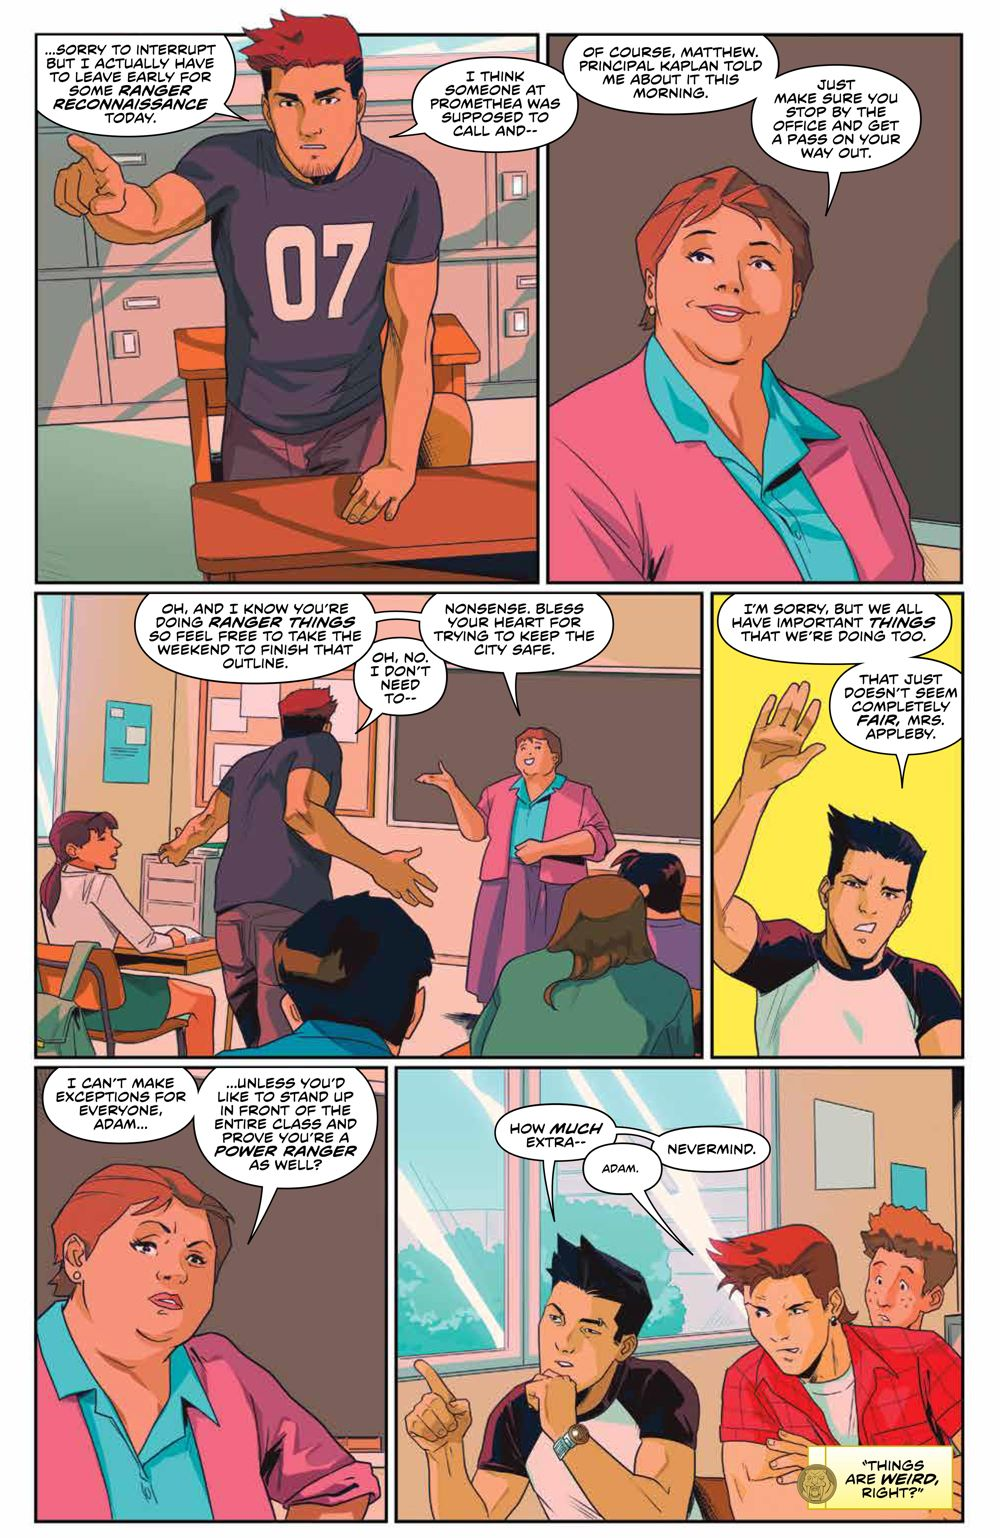 Mighty_Morphin_009_PRESS_7 ComicList Previews: MIGHTY MORPHIN #9